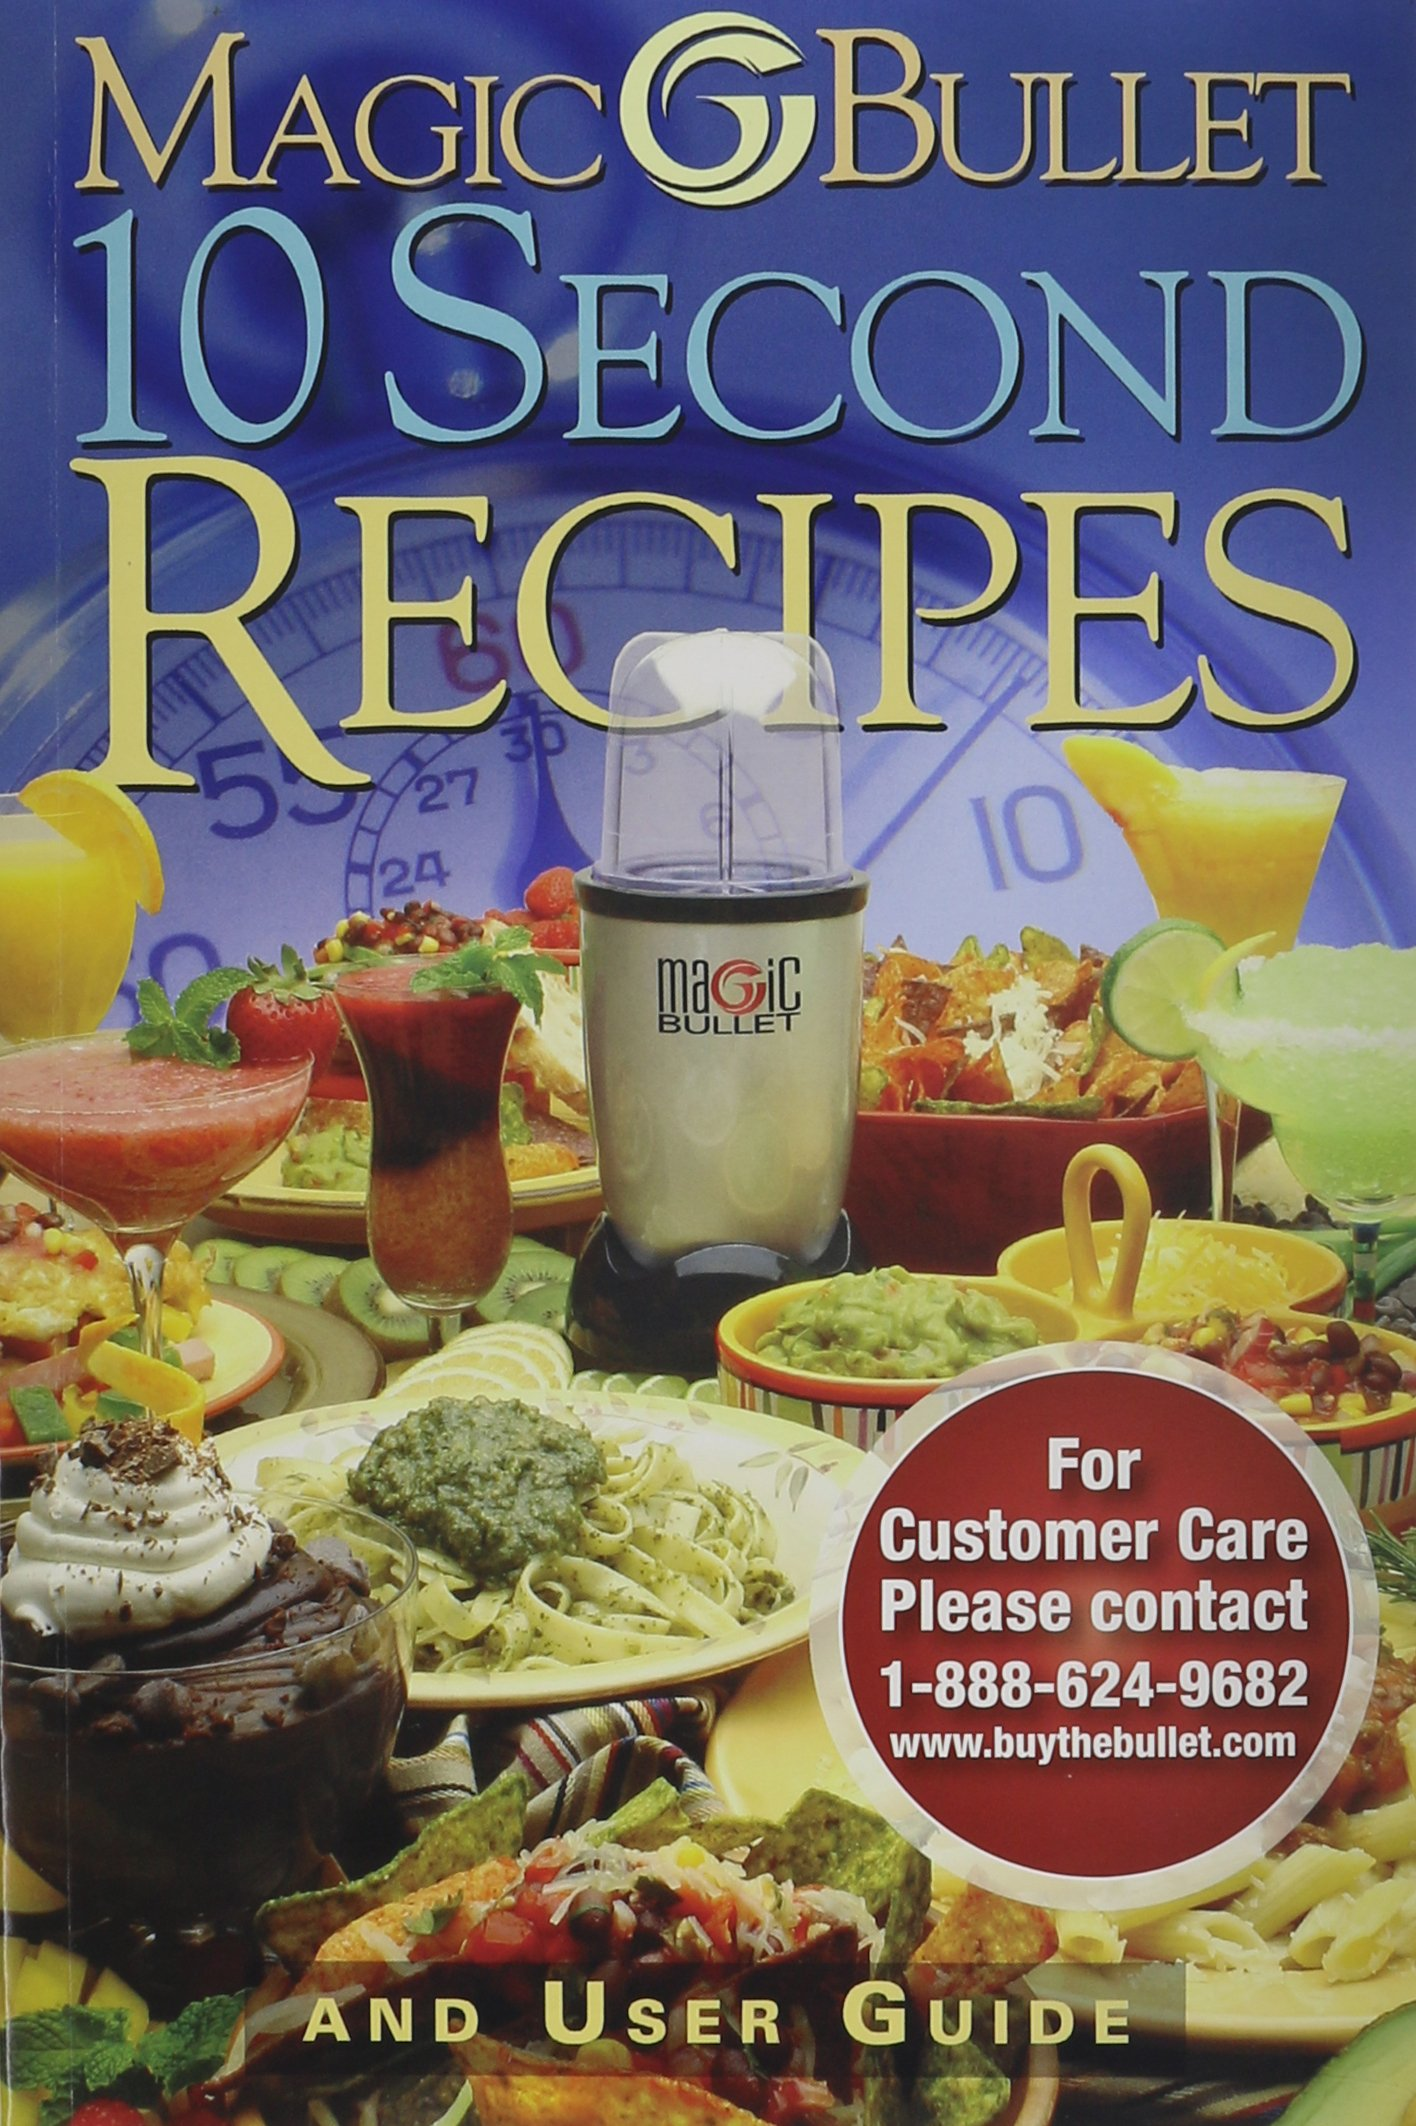 Magic Bullet 10 Second Recipes and User Guide: Amazon.com: Books